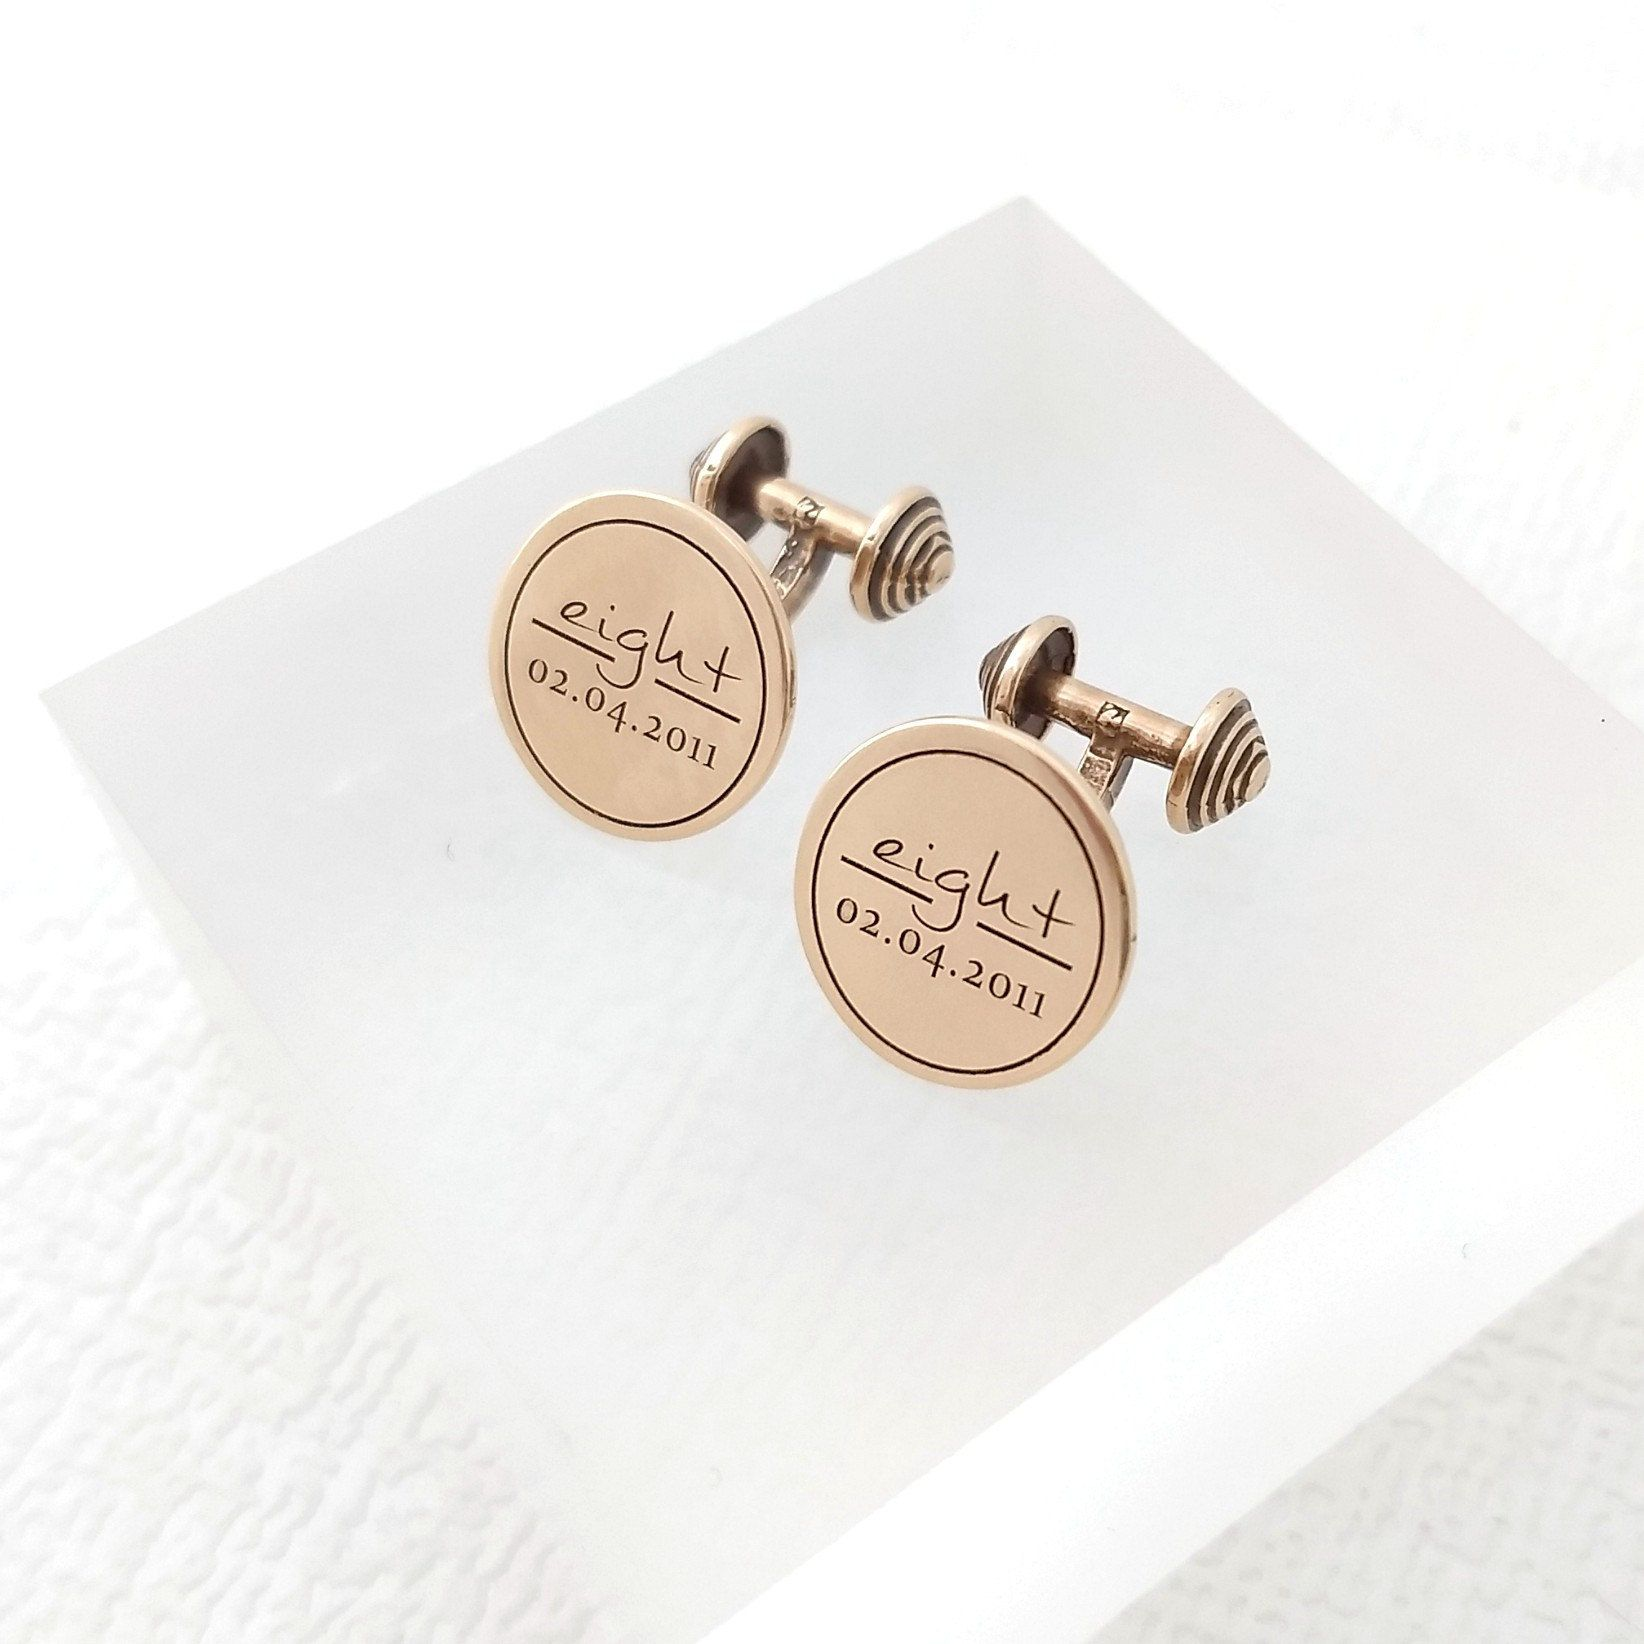 Personalised solid bronze cufflinks. 🔸The perfect 8th